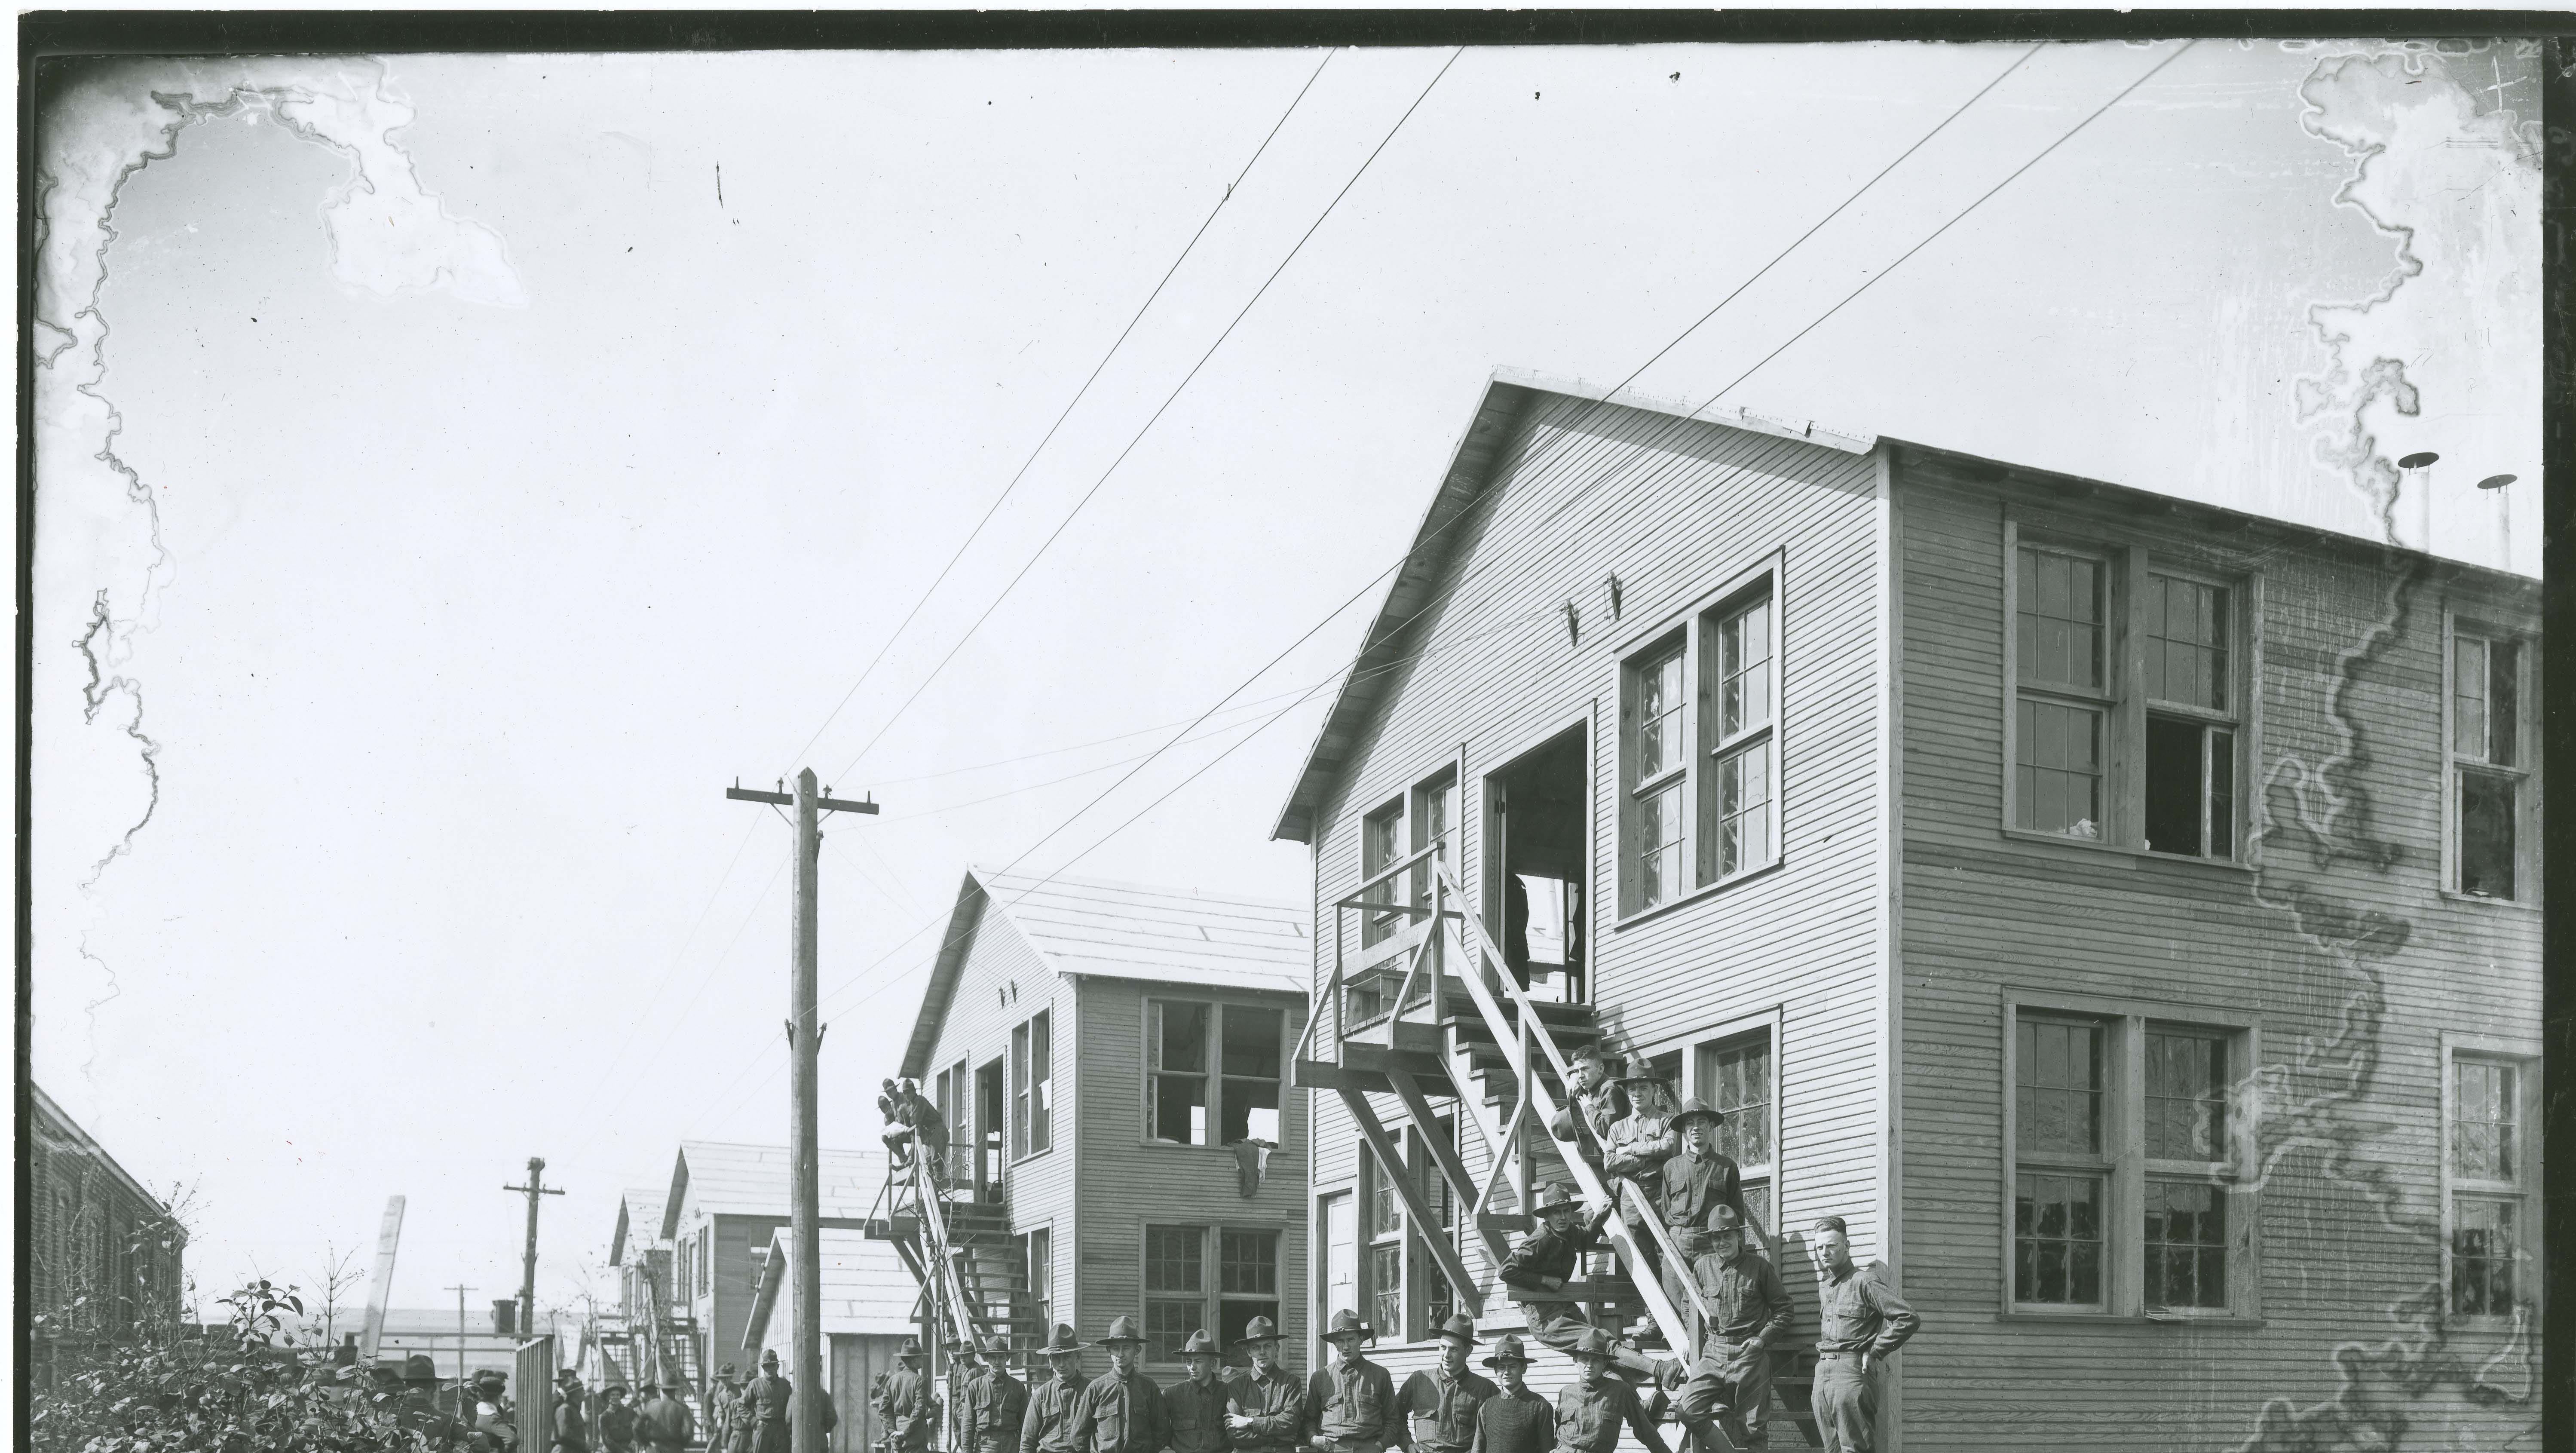 During World War I, barracks were built at Purdue University to train soldiers. The barracks were near where Knoy Hall is today.